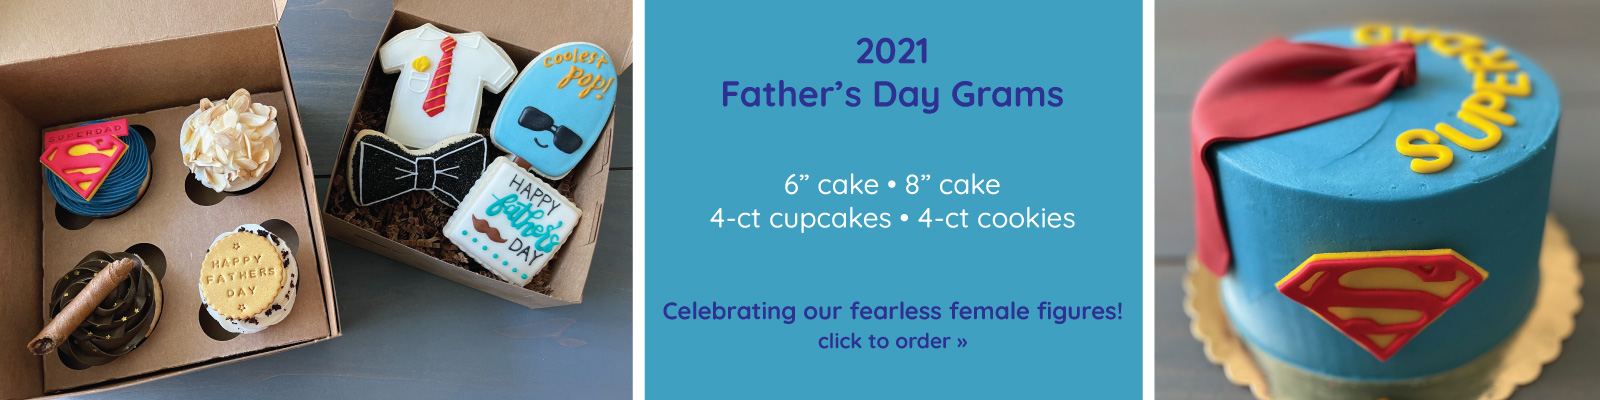 fathers-day-2021-banner